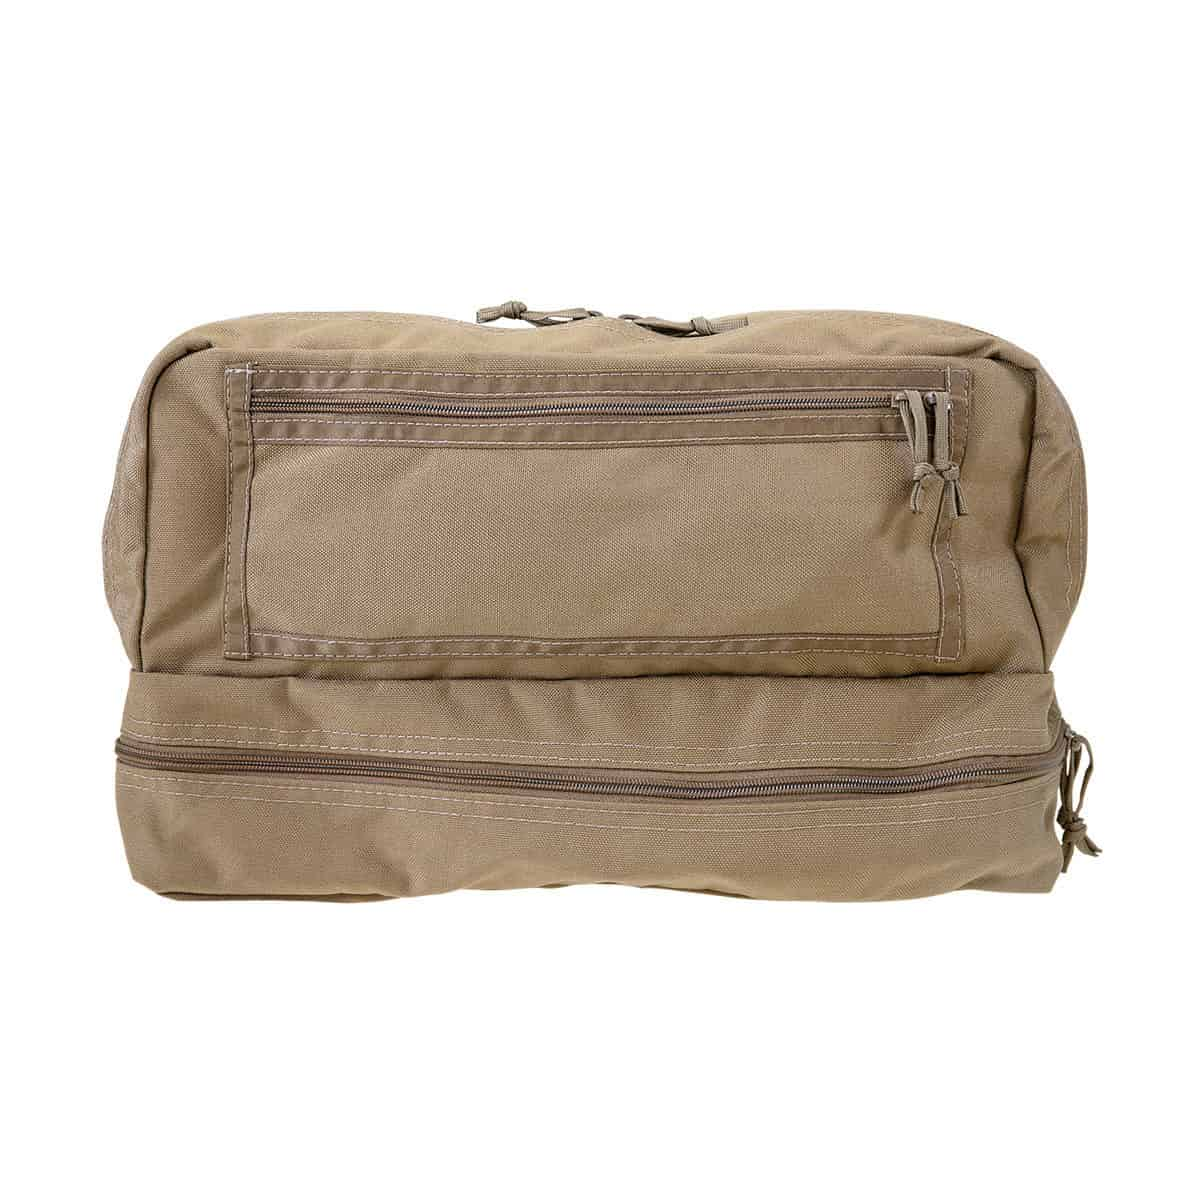 mojo combat life saver bag closed front coyote brown